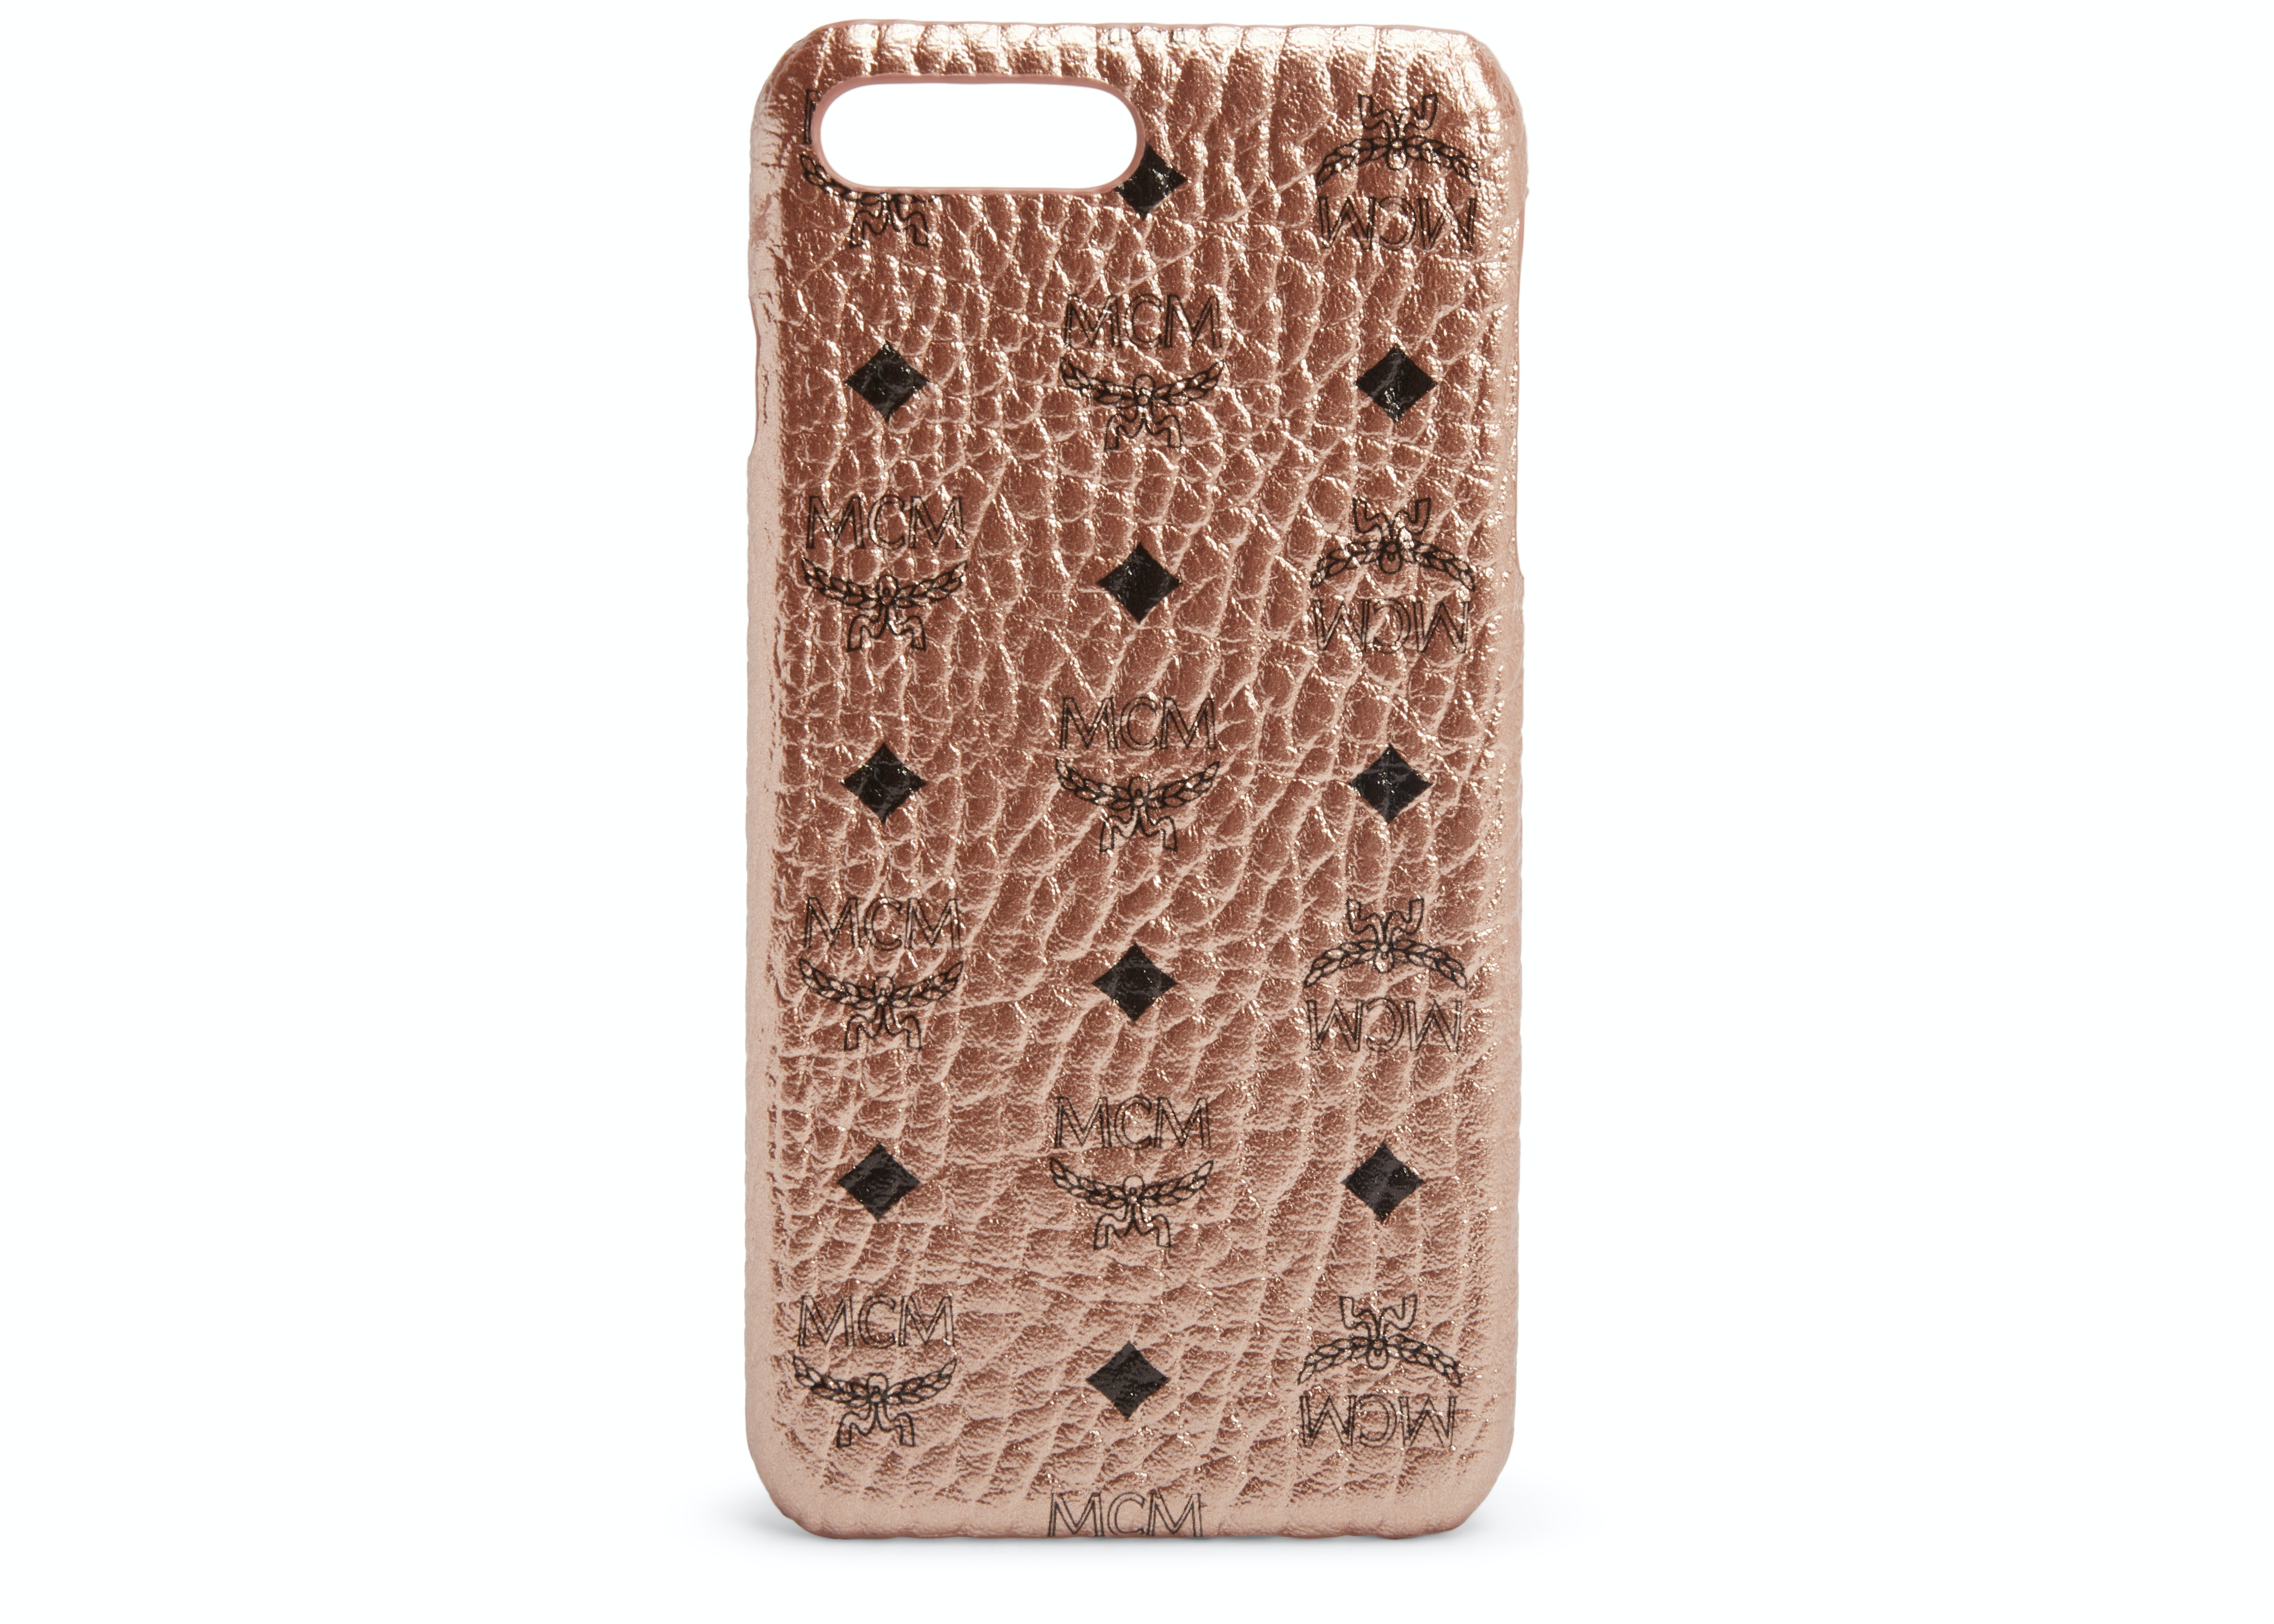 MCM iPhone Case Visetos 6S/7/8 Plus Champagne Gold